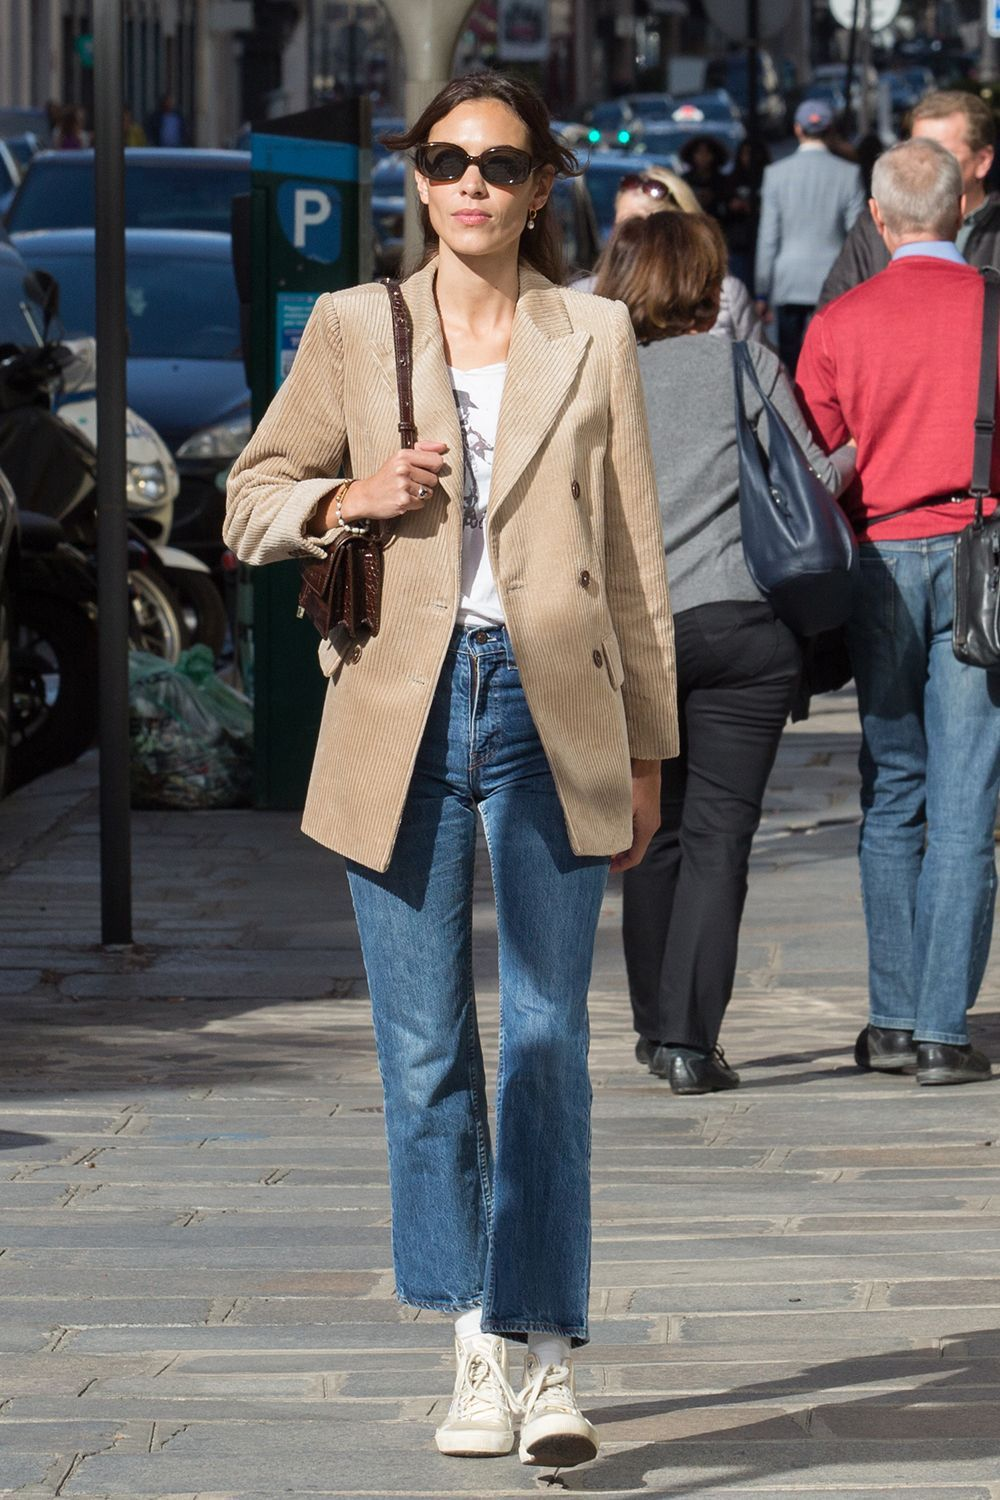 Alexa Chung Casual-Cool Style Inspiration: Round Sunglasses, Beige Blazer, White T-Shirt, Cropped Straight-Leg Jeans, and White Converse Hi-Top Sneakers